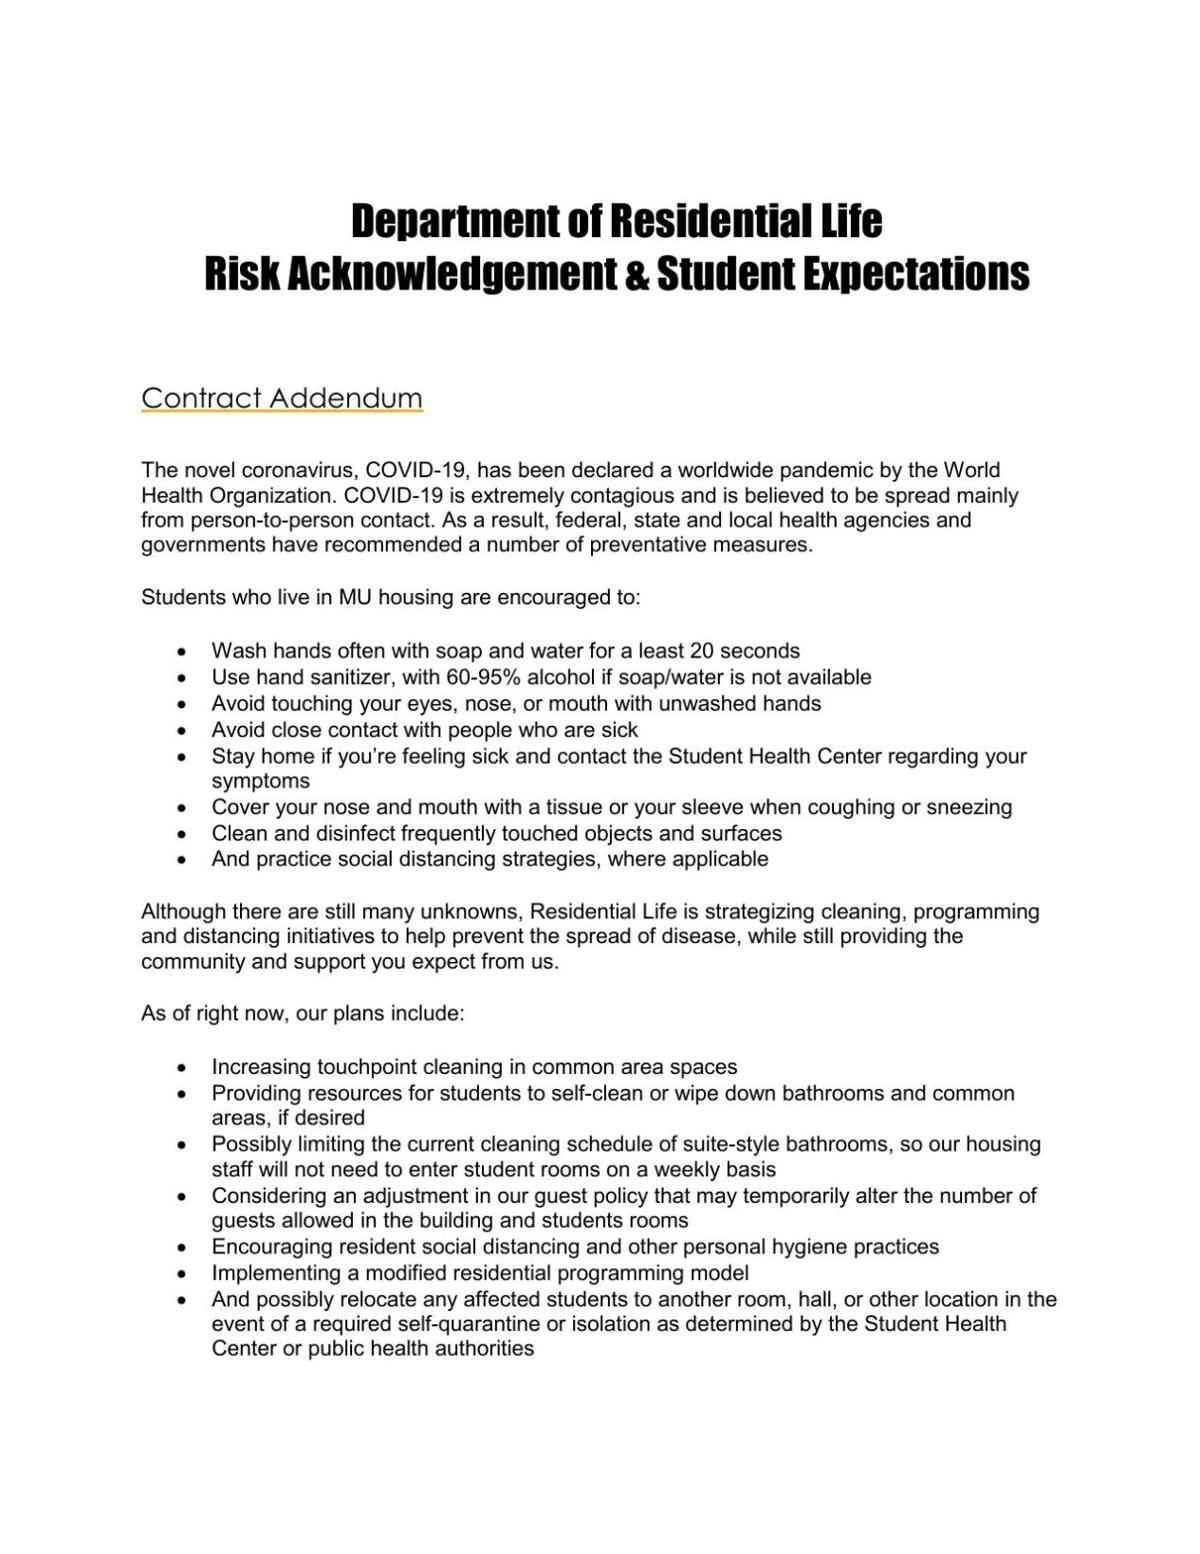 Risk acknowledgement contract